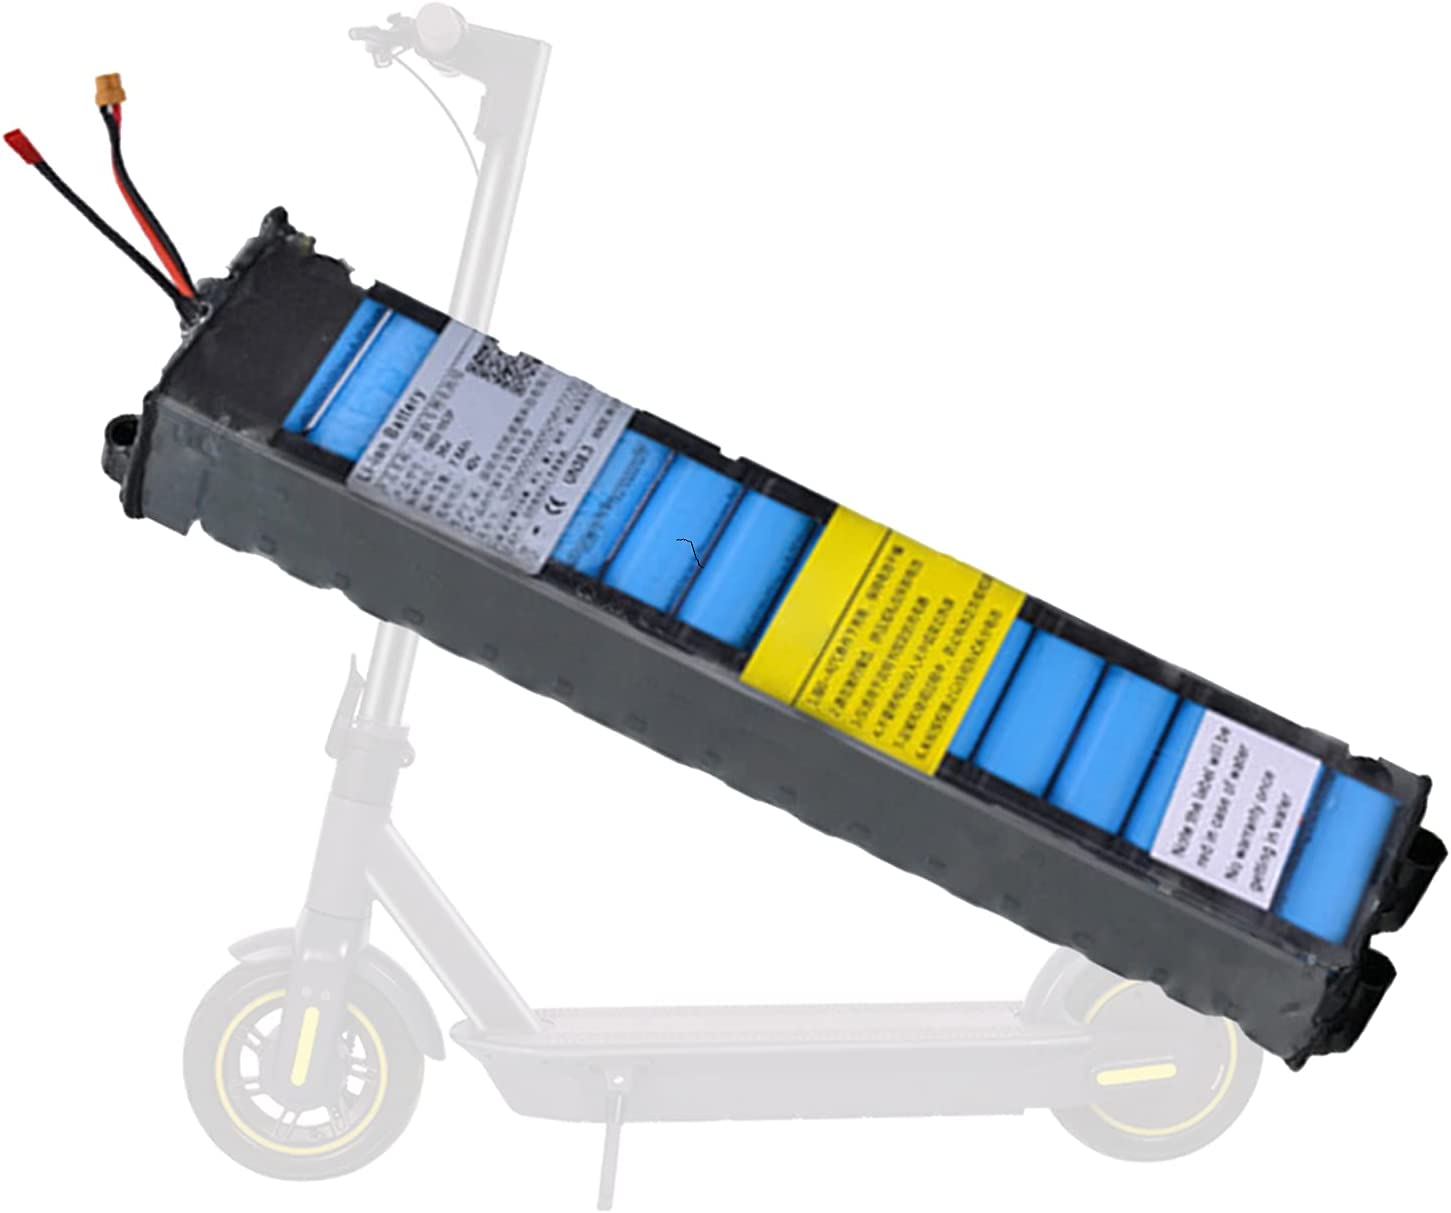 FREEDOH 36V 6.6AH 7.8Ah 12.8Ah Battery M36 Super beauty 67% OFF of fixed price product restock quality top Electric Scooter Pack